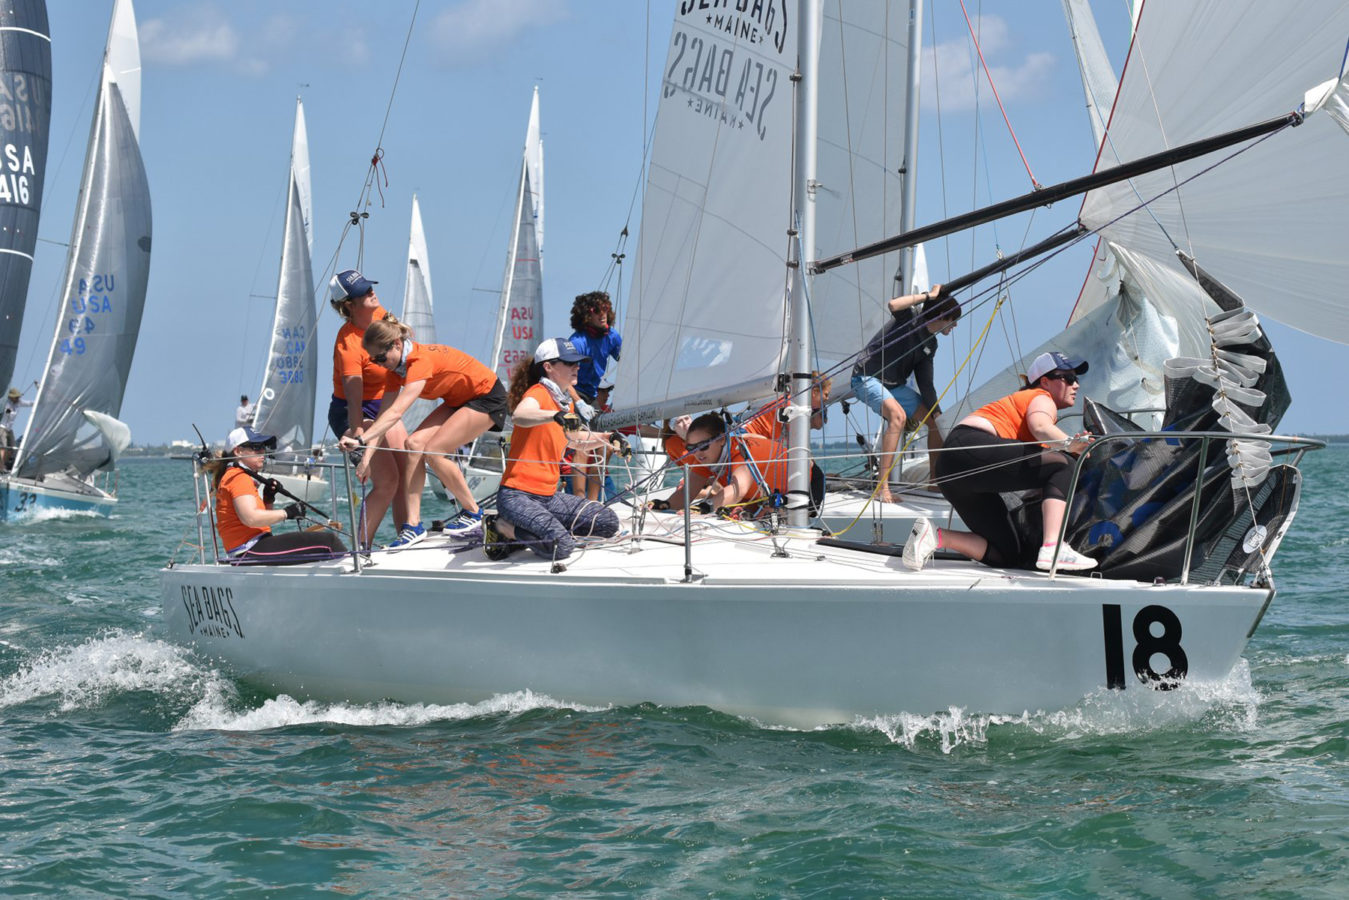 J/24 women's Seabags Sailing Team